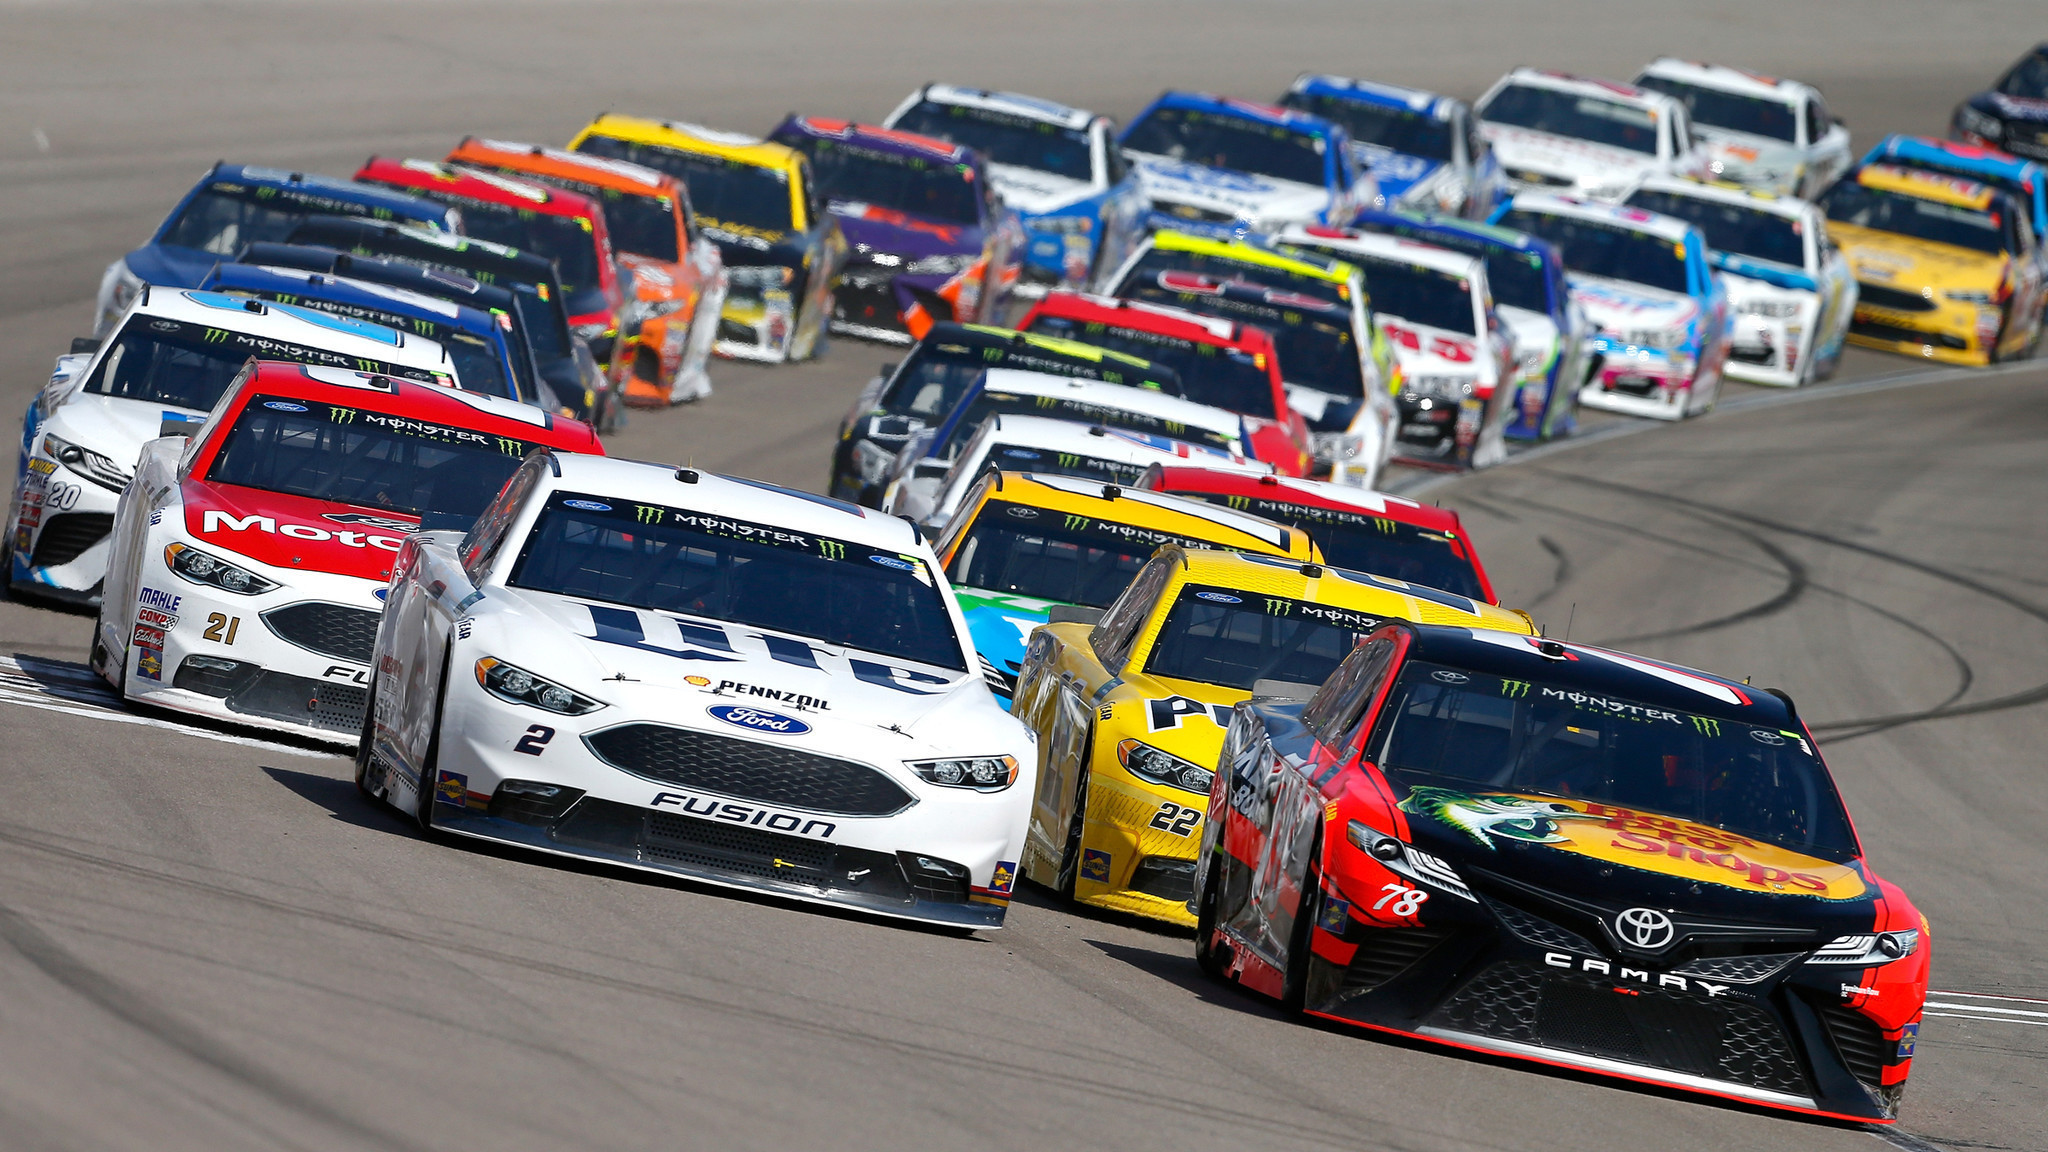 President Trump singles out NASCAR in anthem tweets; Dale Earnhardt Jr.  supports peaceful protests